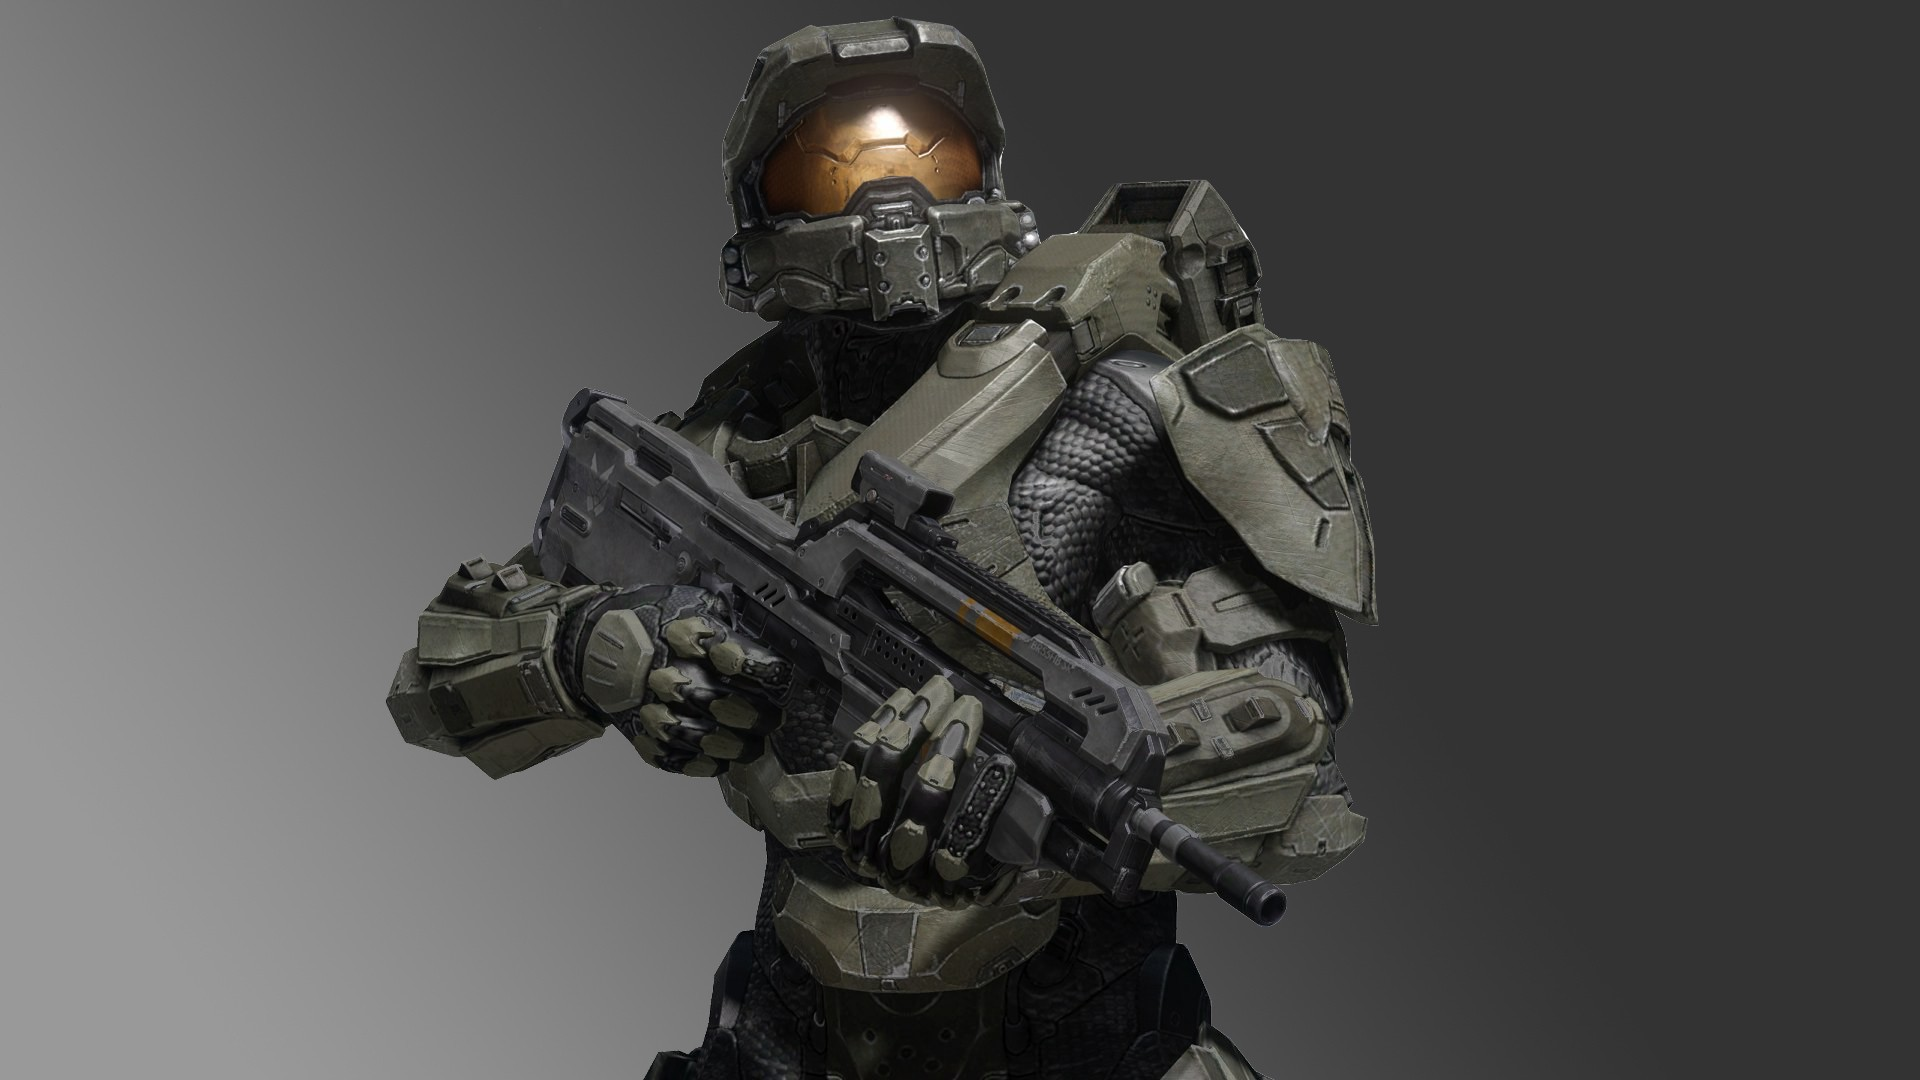 1920x1080 Halo, Master Chief, Cyberpunk wallpapers and images - wallpapers .